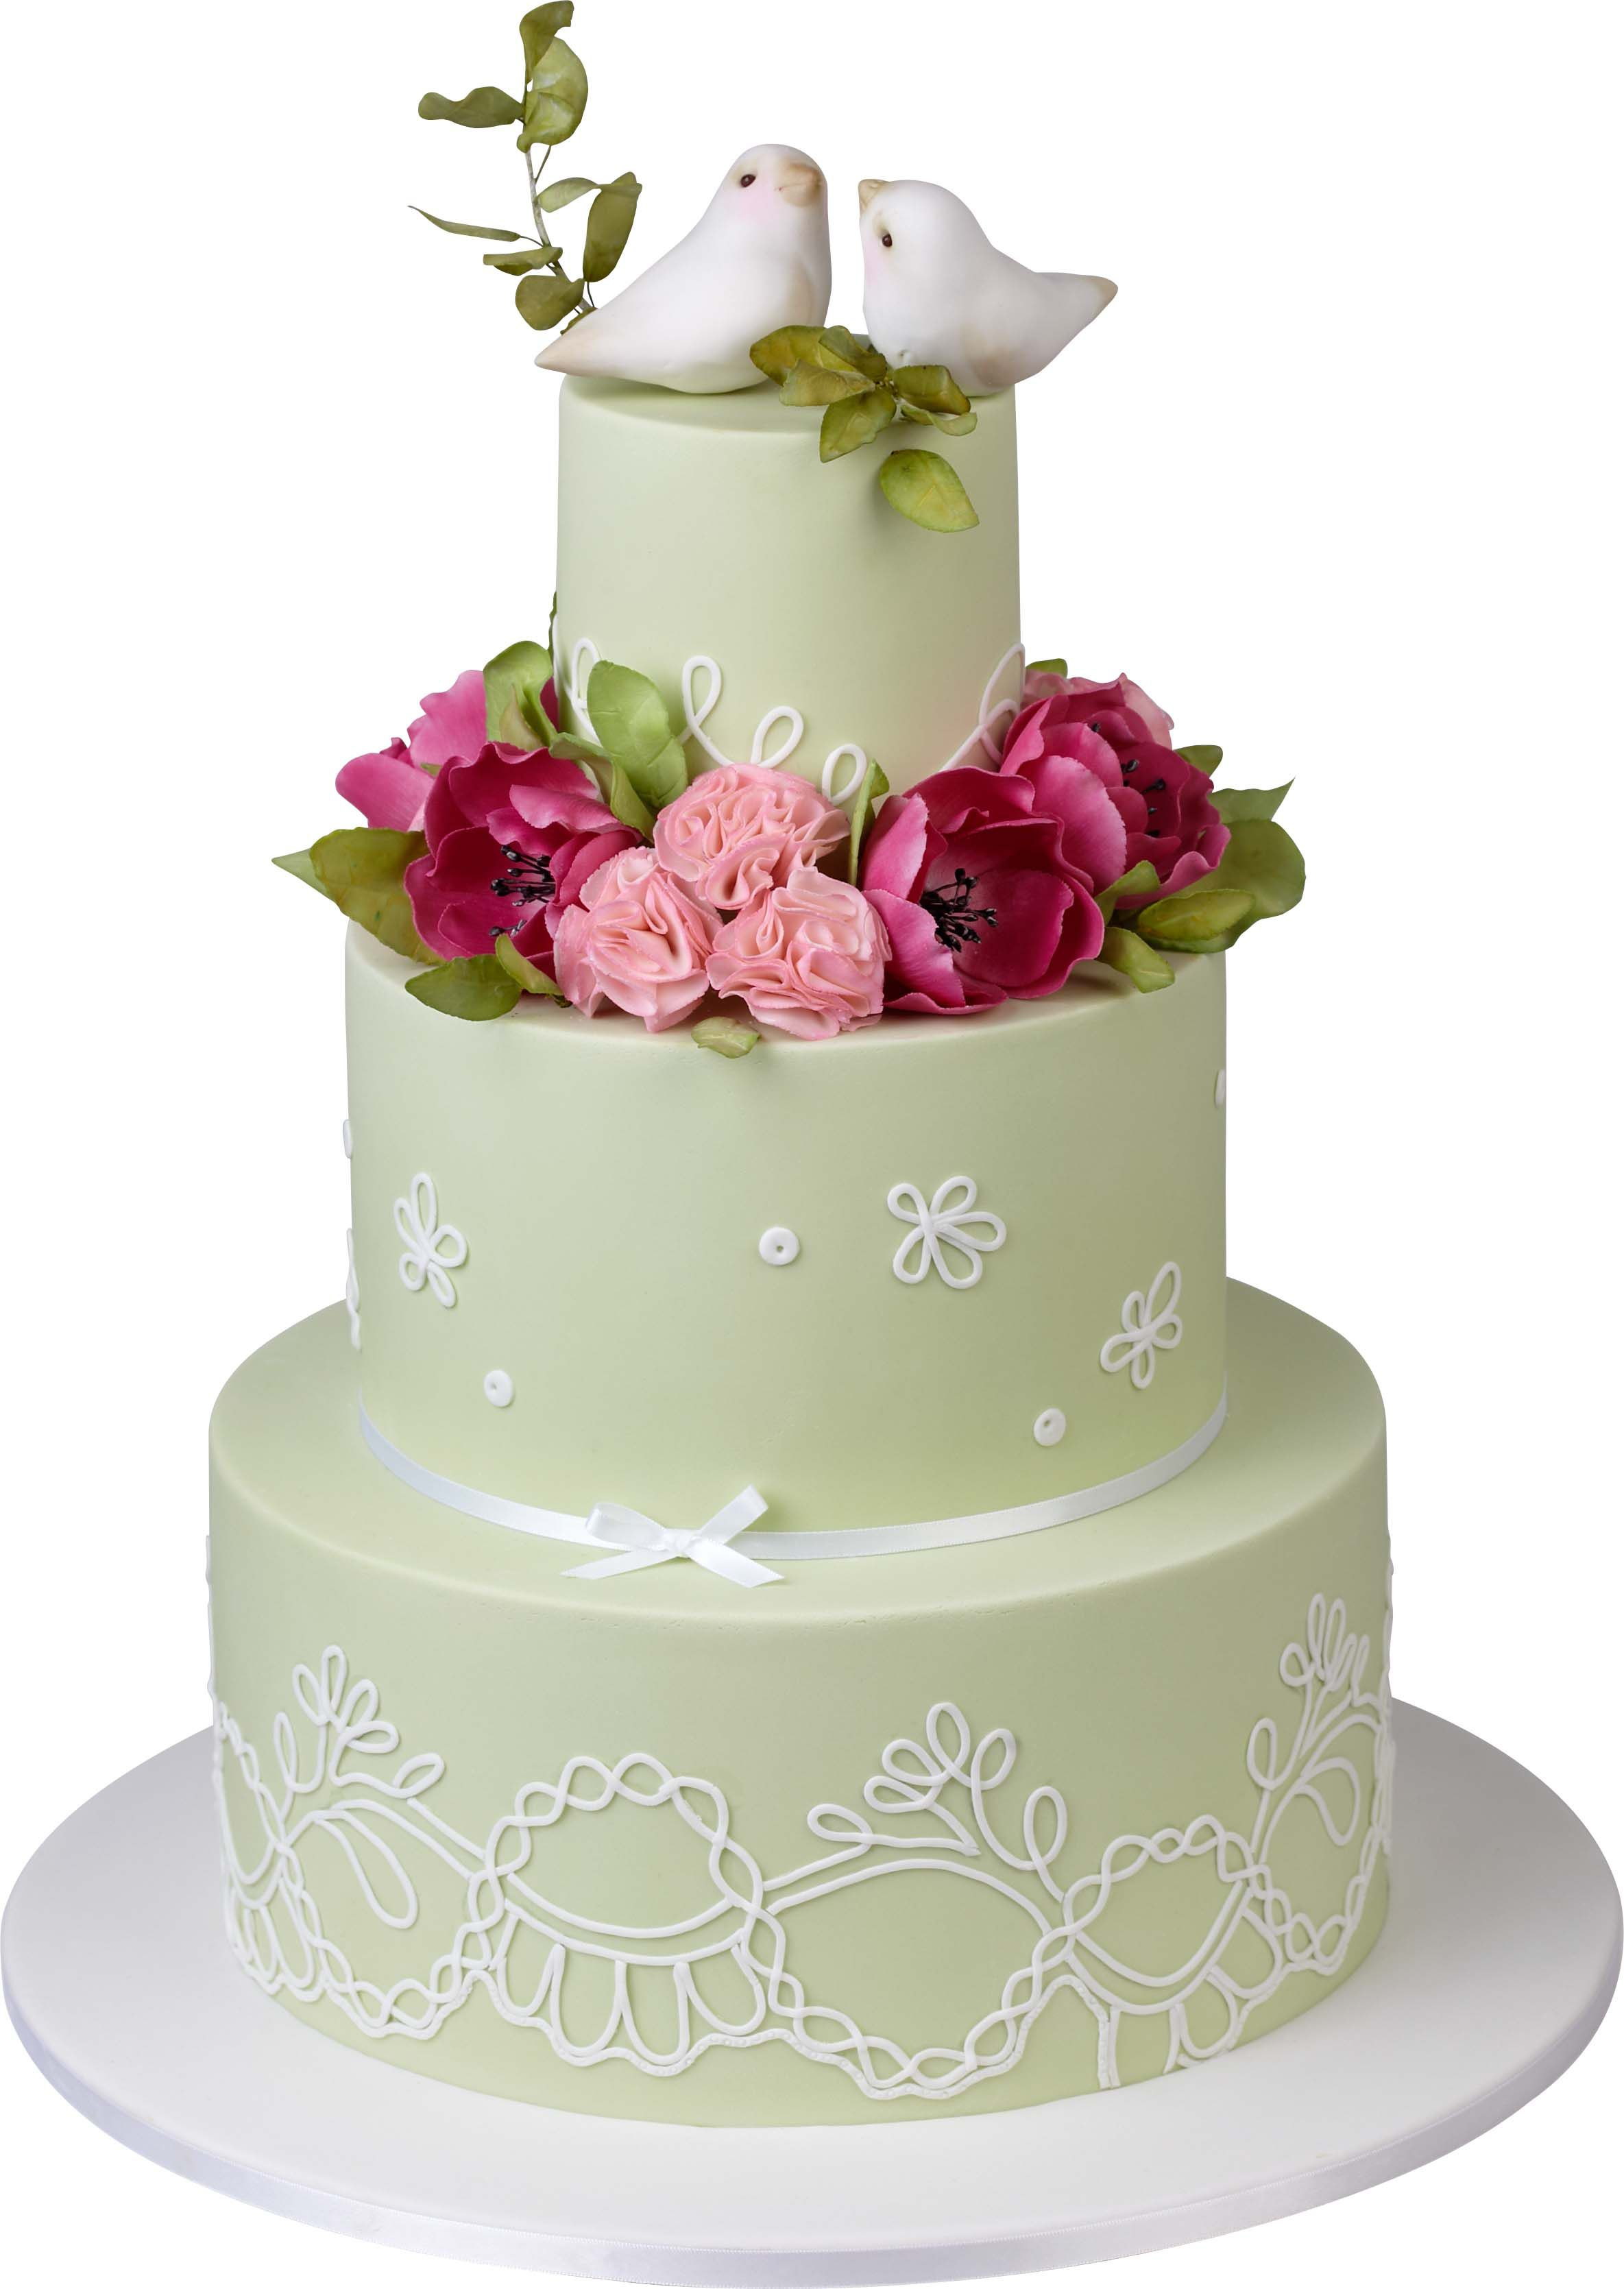 Light green tier cake with turtle doves and rose decoration by